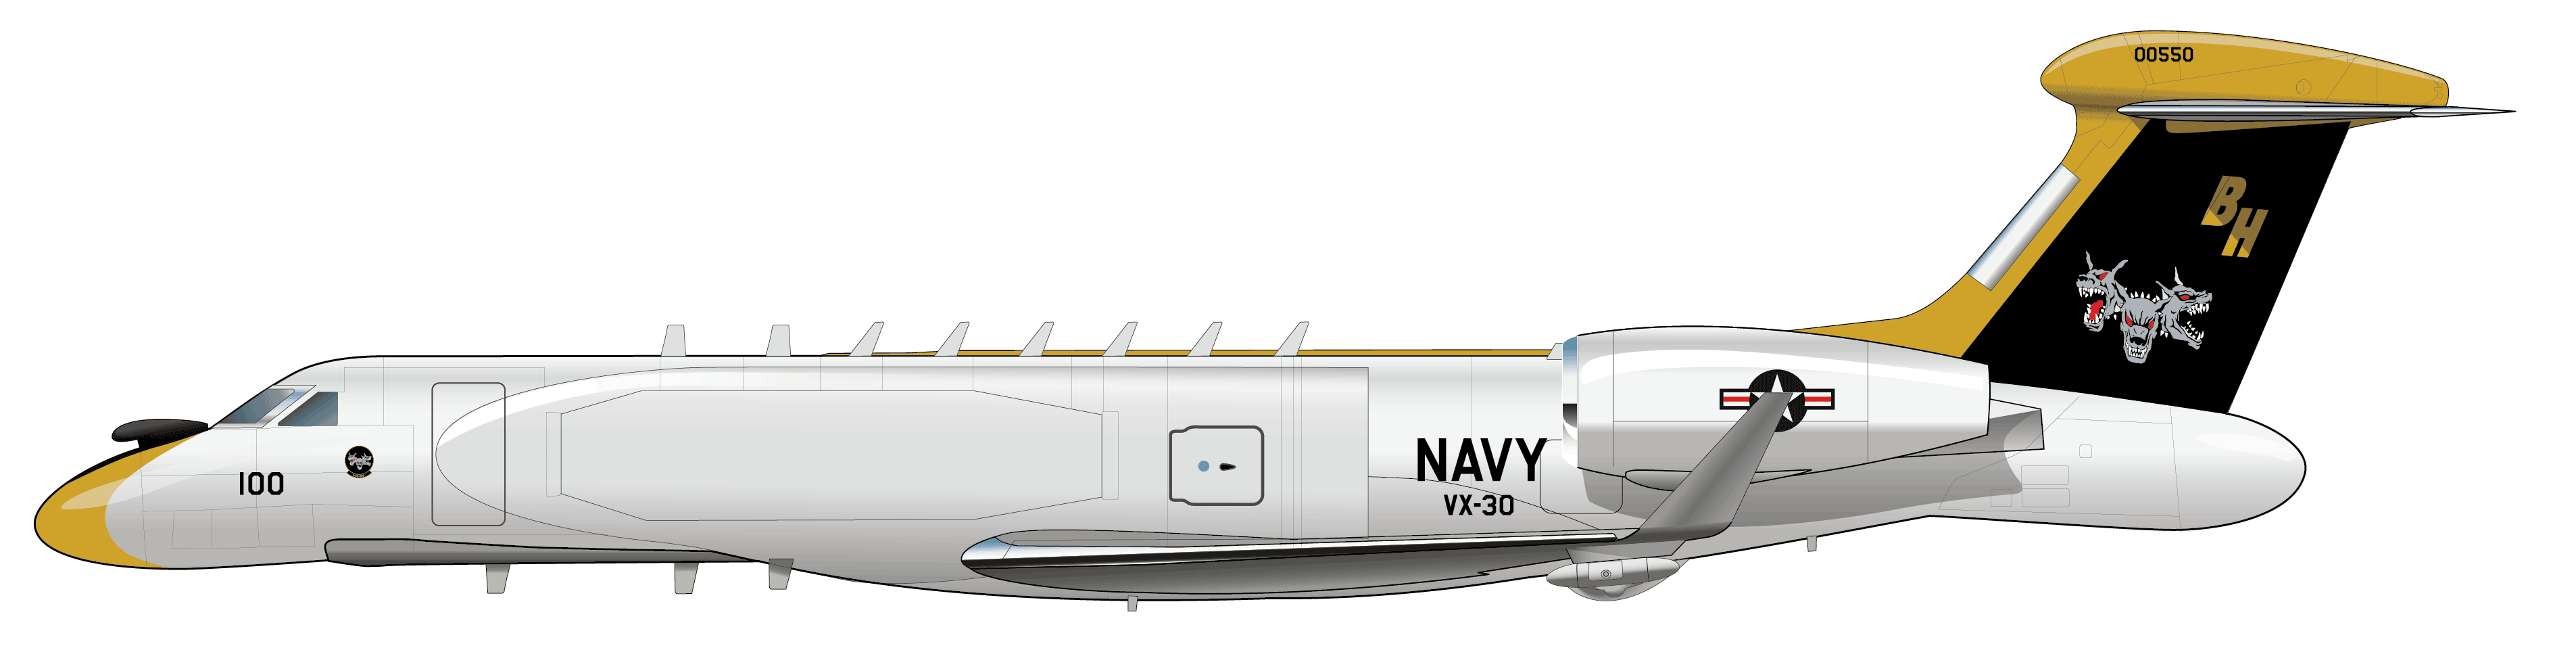 U.S. Navy: Telemetry Range Support Aircraft